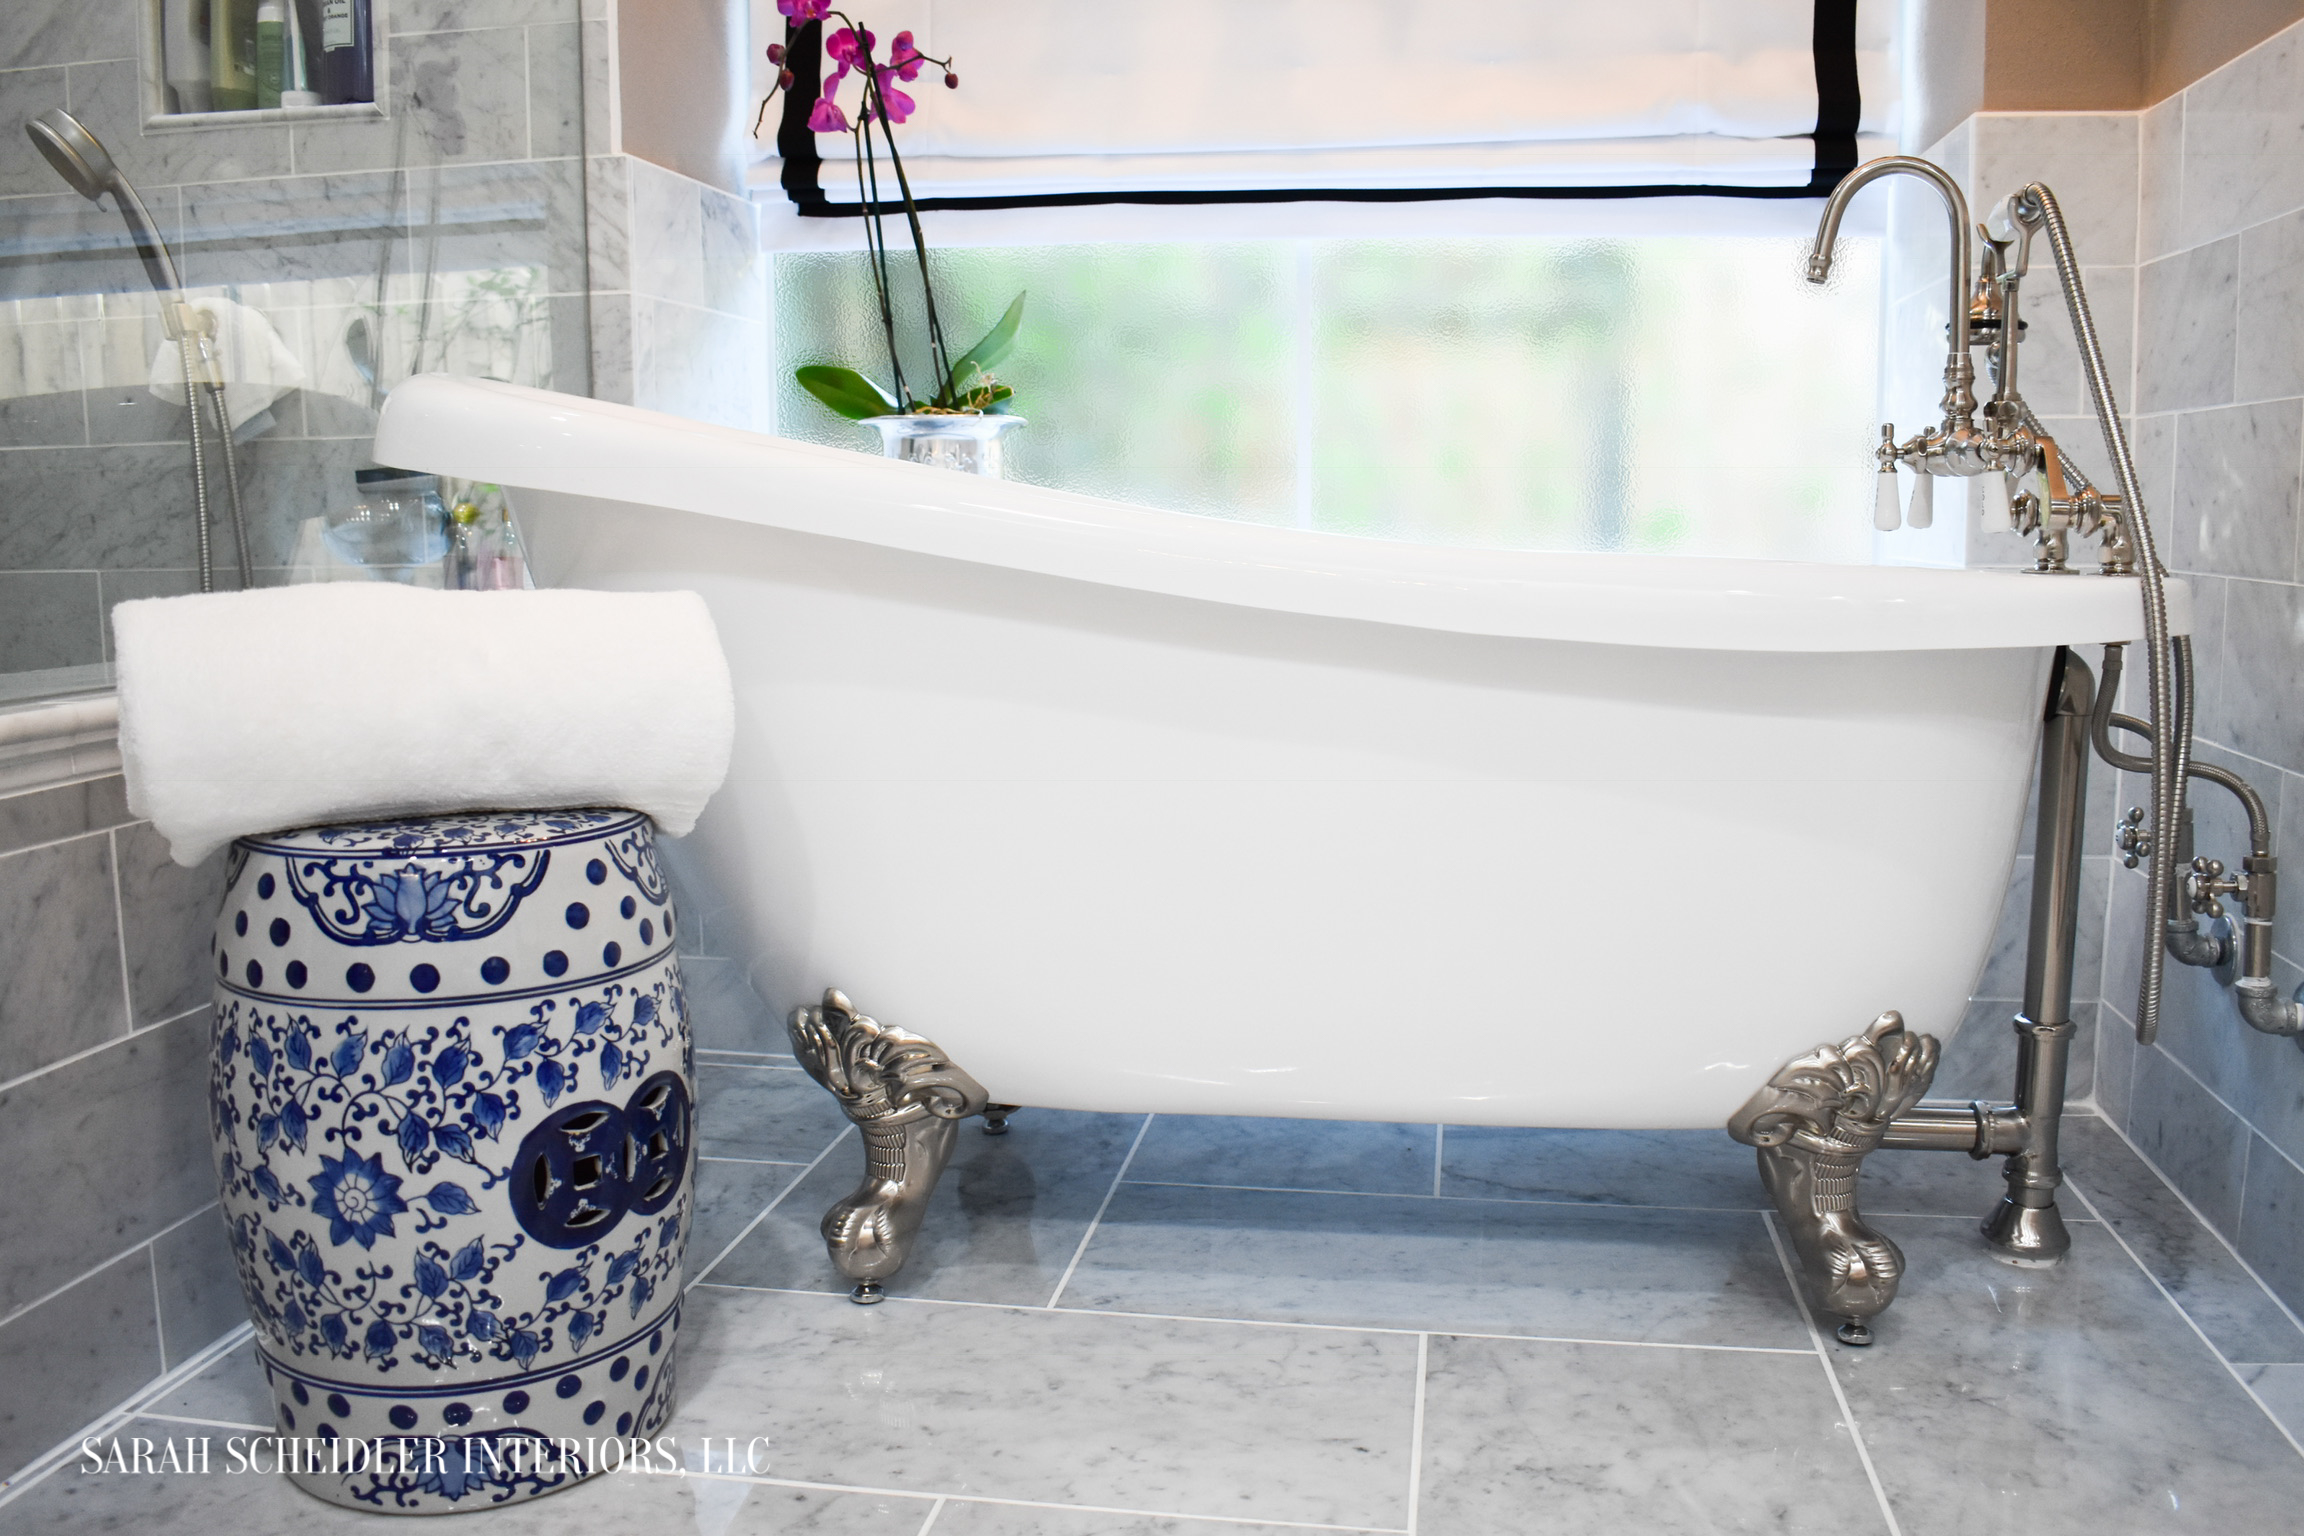 Clawfoot Tub in White and Grey Marble Master Bathroom with Blue and White Decorative Accent Stool